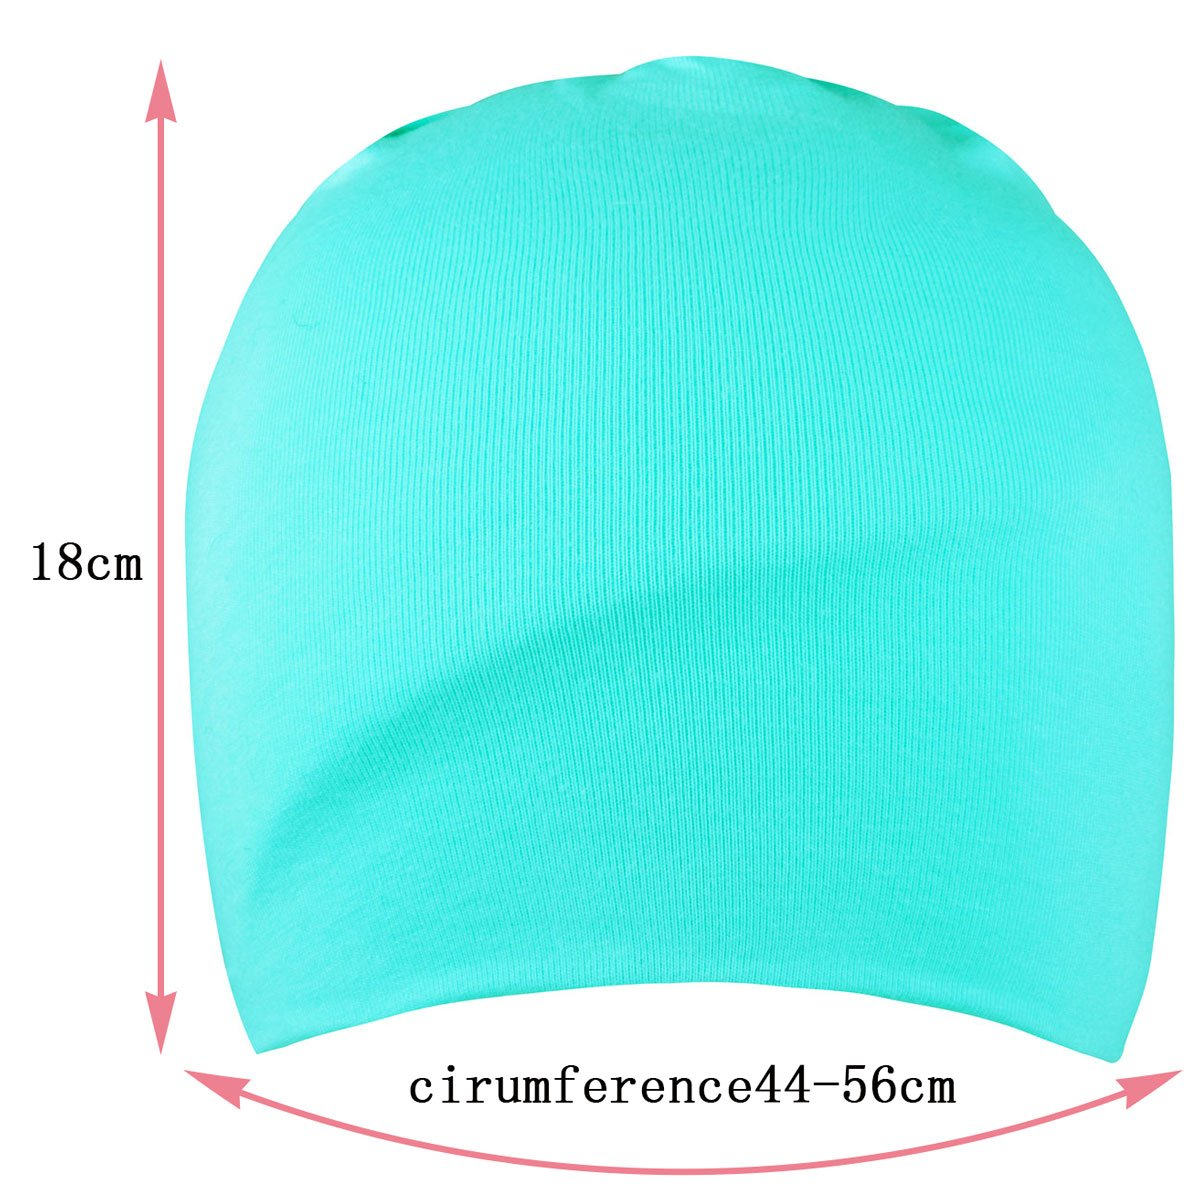 Child Beanies Hats for Kids Boys Girls Toddler Infant Cotton Soft Caps